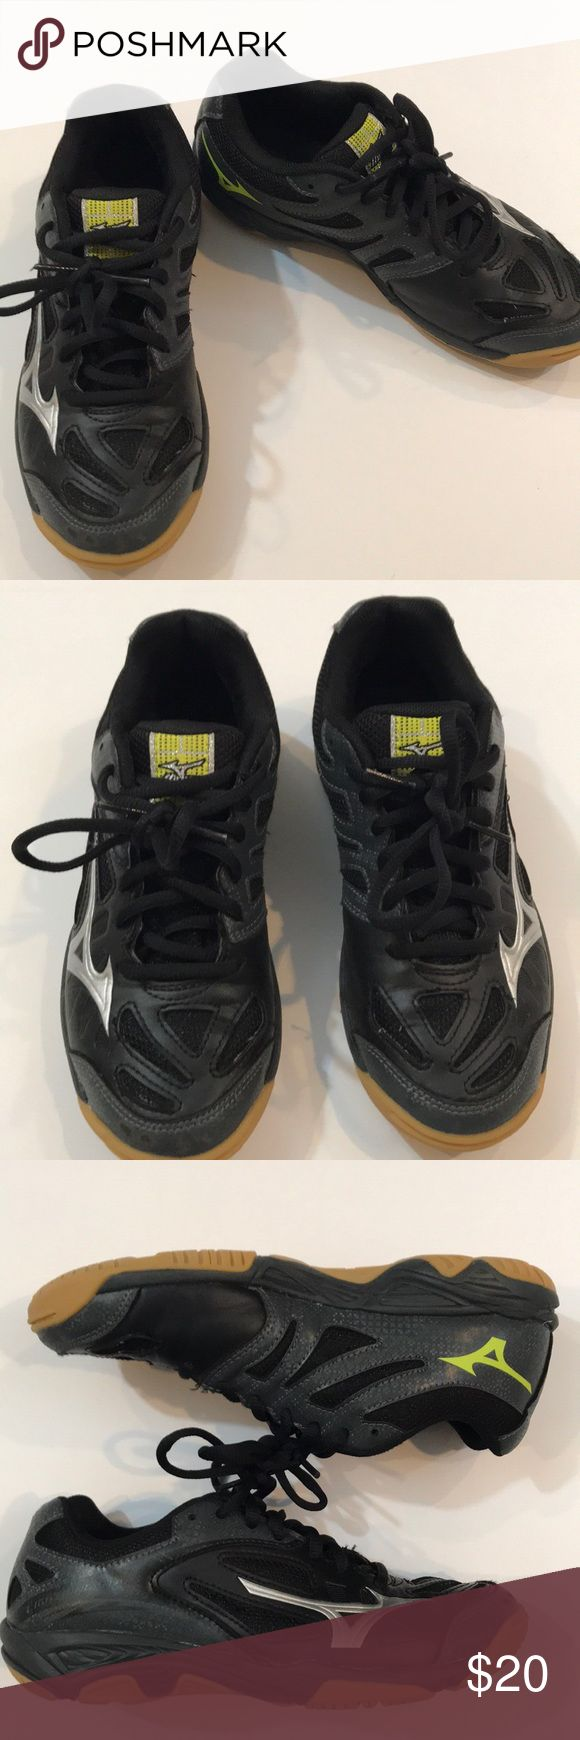 Mizuno Lightening Star Volleyball Shoes The Mizuno Lightning Star Z2 Youth Volleyball Shoes are the shoes you want to be wearing while battling your toughest opponents on the court. They're designed specifically for volleyball movements and will ultimately better your overall performance. Excellent condition. Size 4. Mizuno Shoes Sneakers